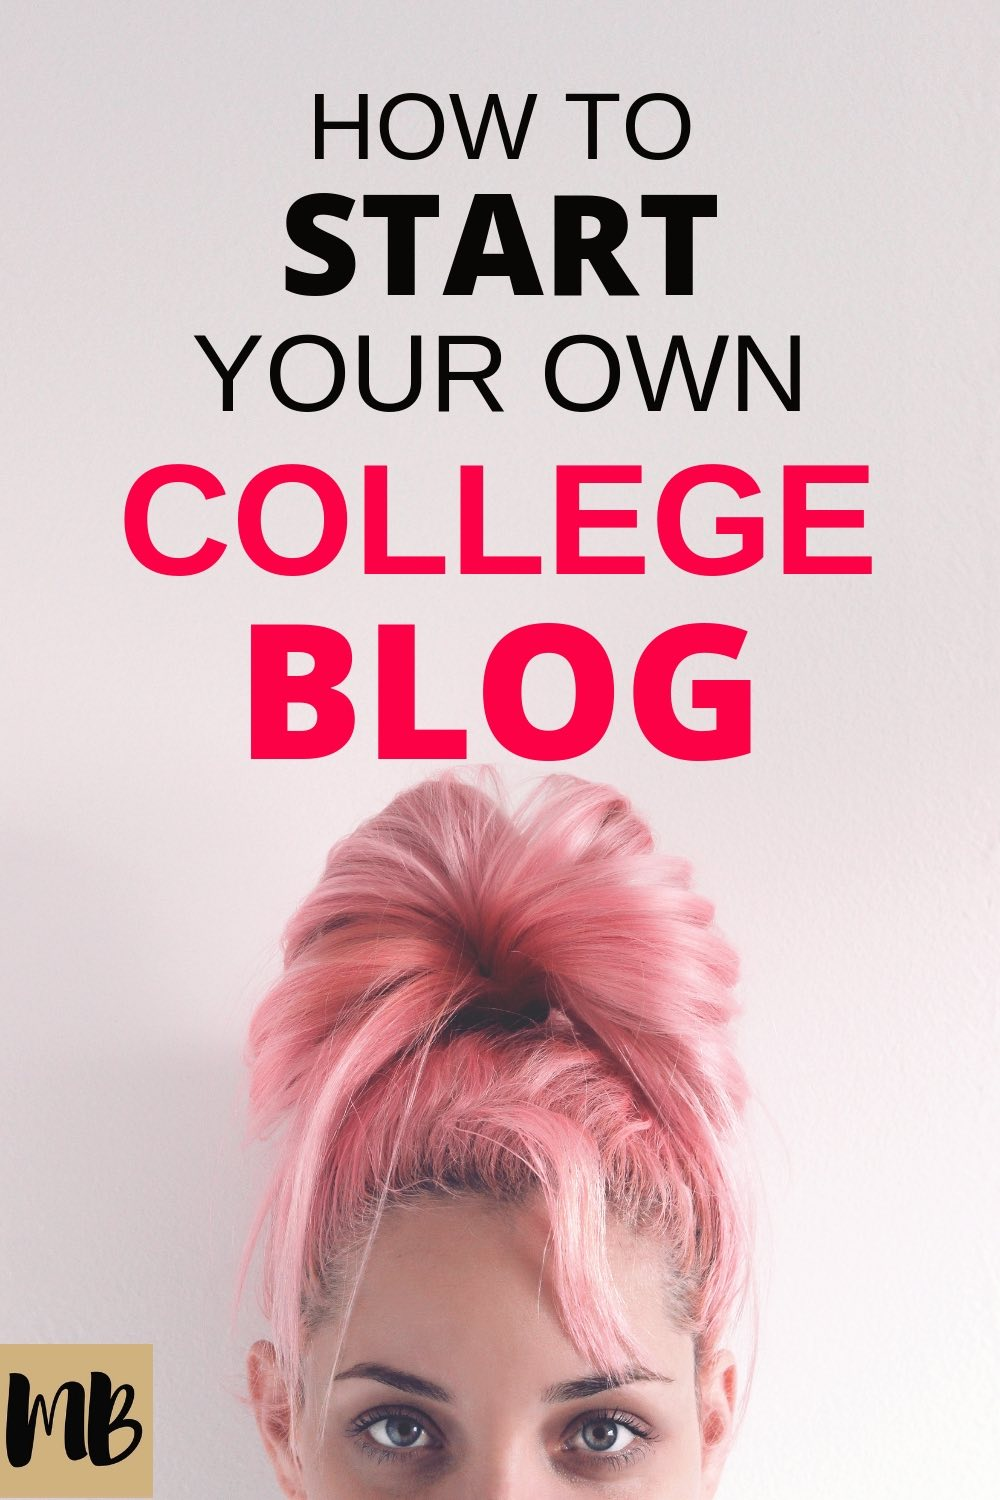 Starting a college blog? Here's everything you need to know to get started with your college blog #blogging #college